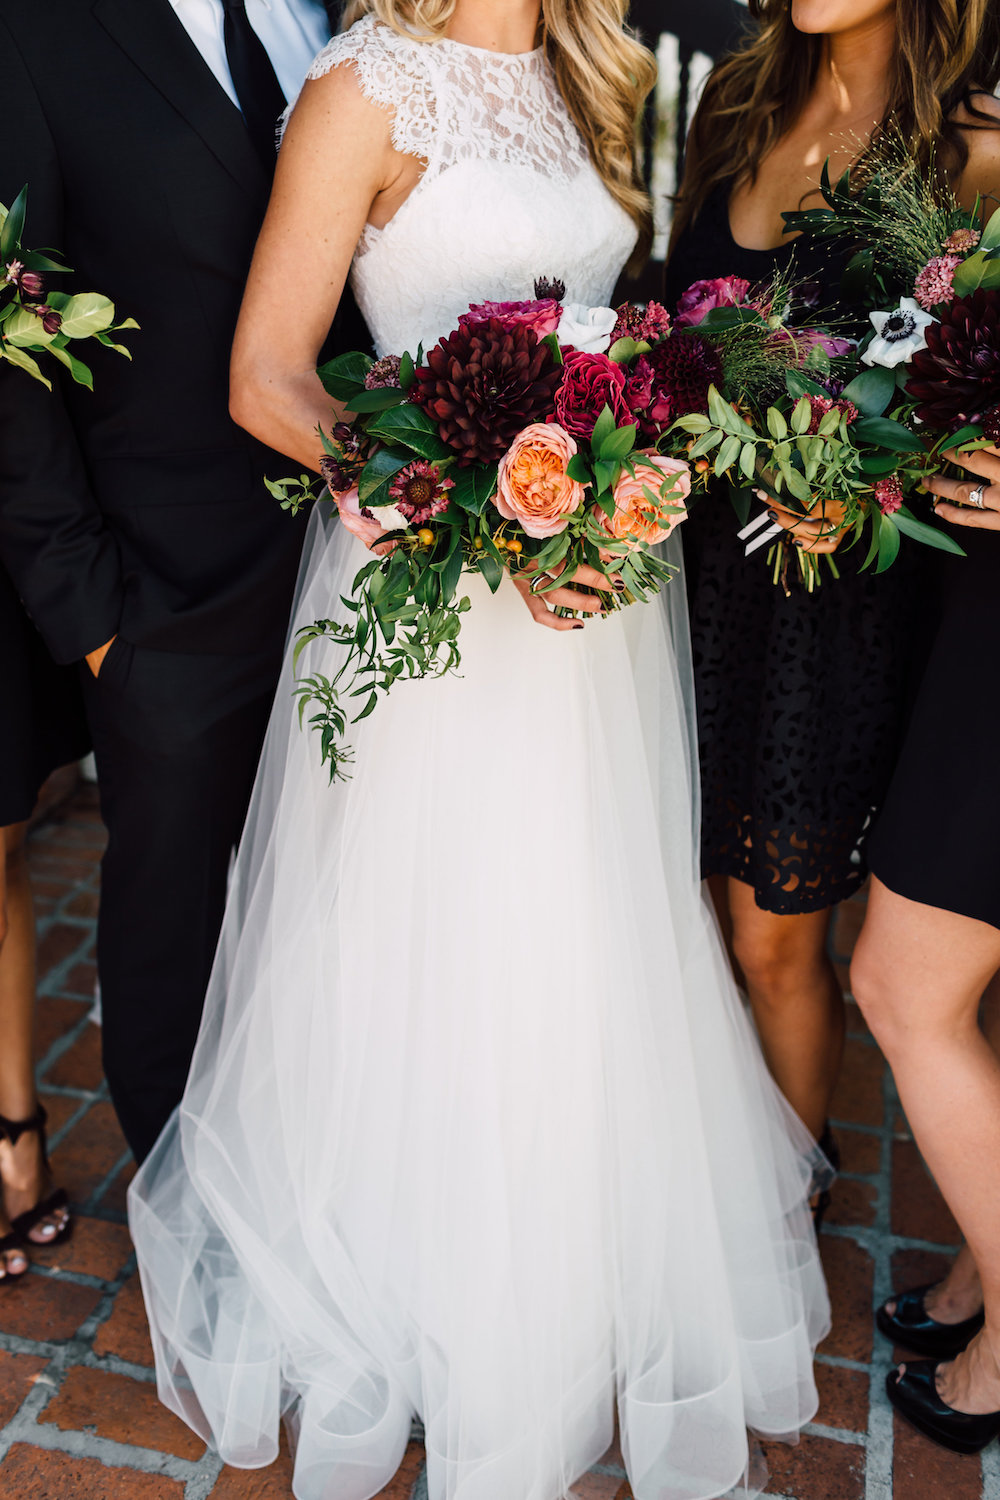 Modern, classic wedding with colorful florals by Compass Floral | Darlington House, La Jolla.